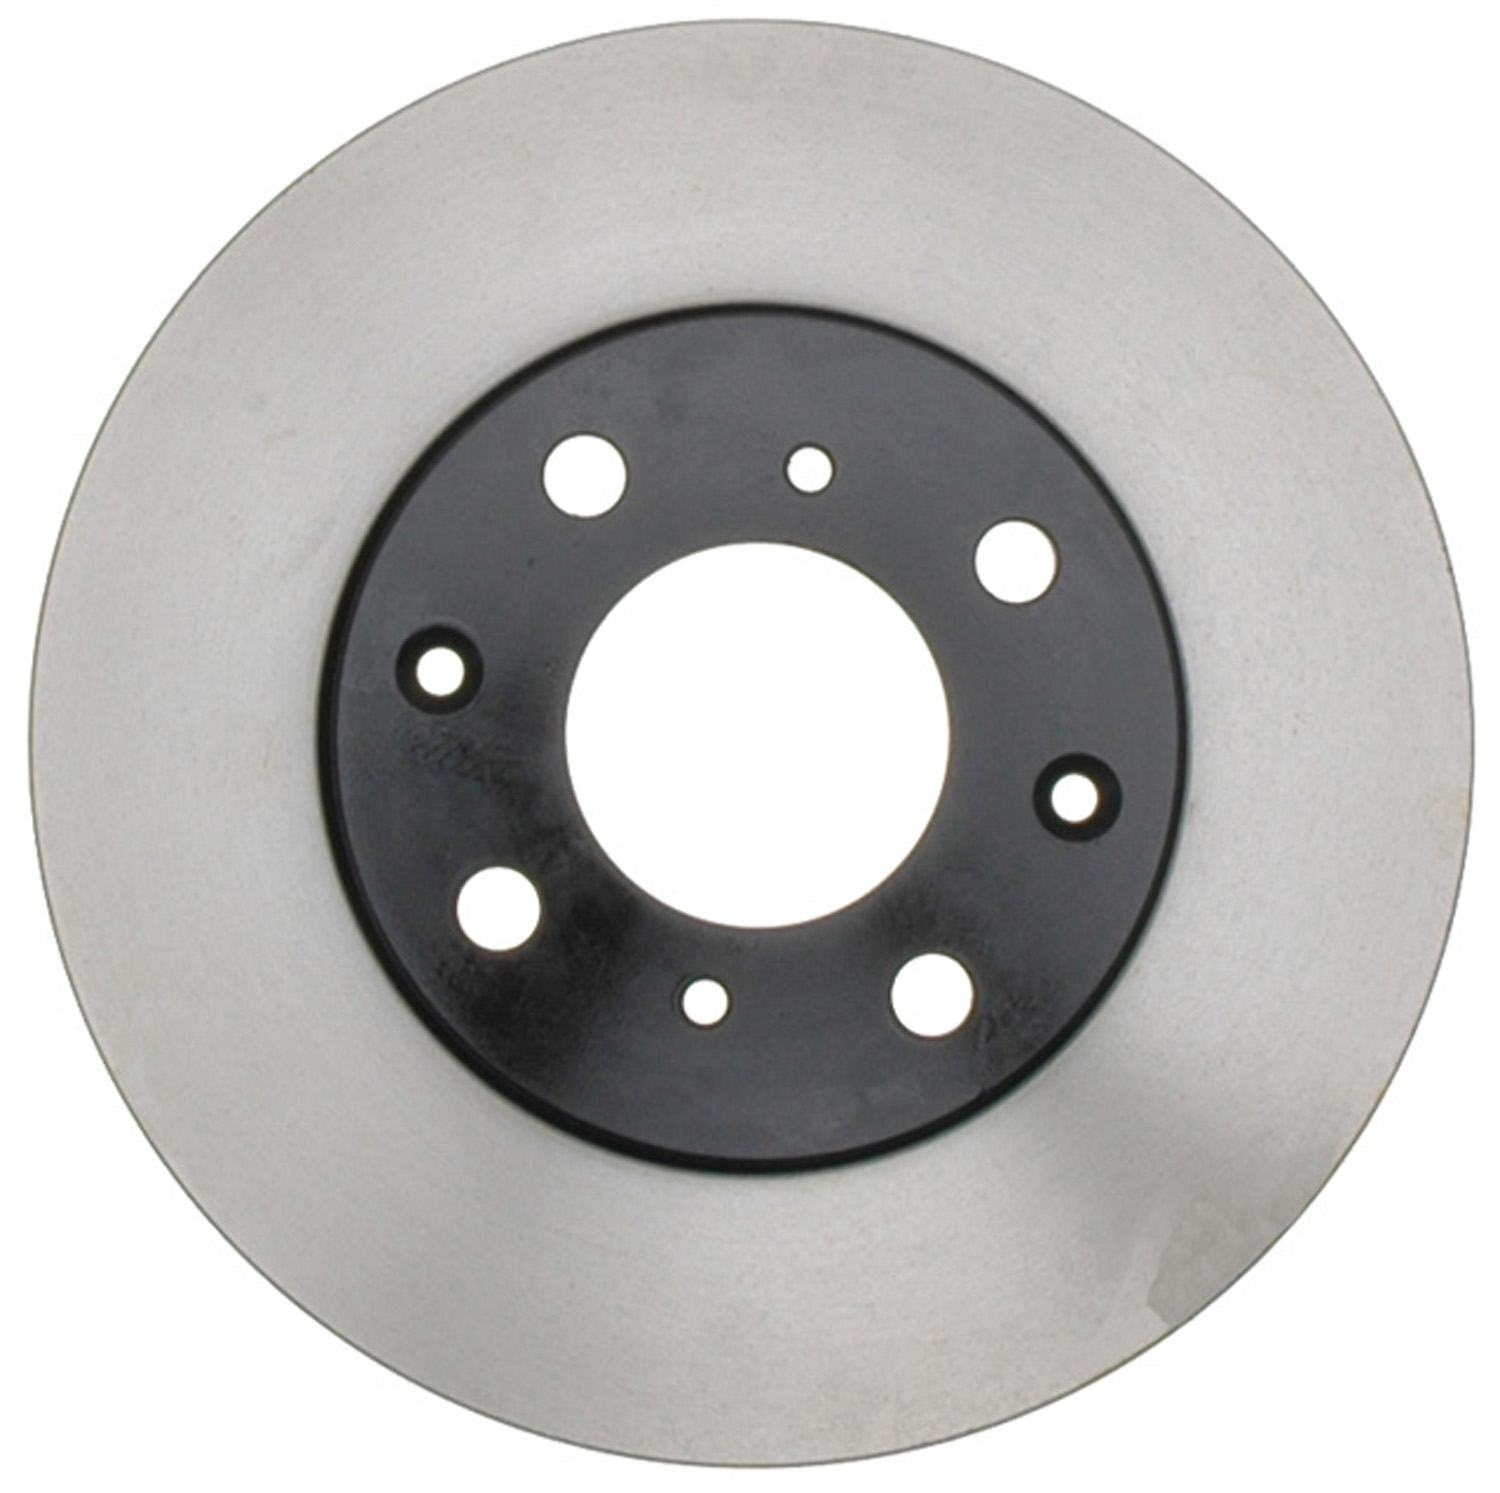 ACDELCO PROFESSIONAL BRAKES - Disc Brake Rotor (Front) - ADU 18A413